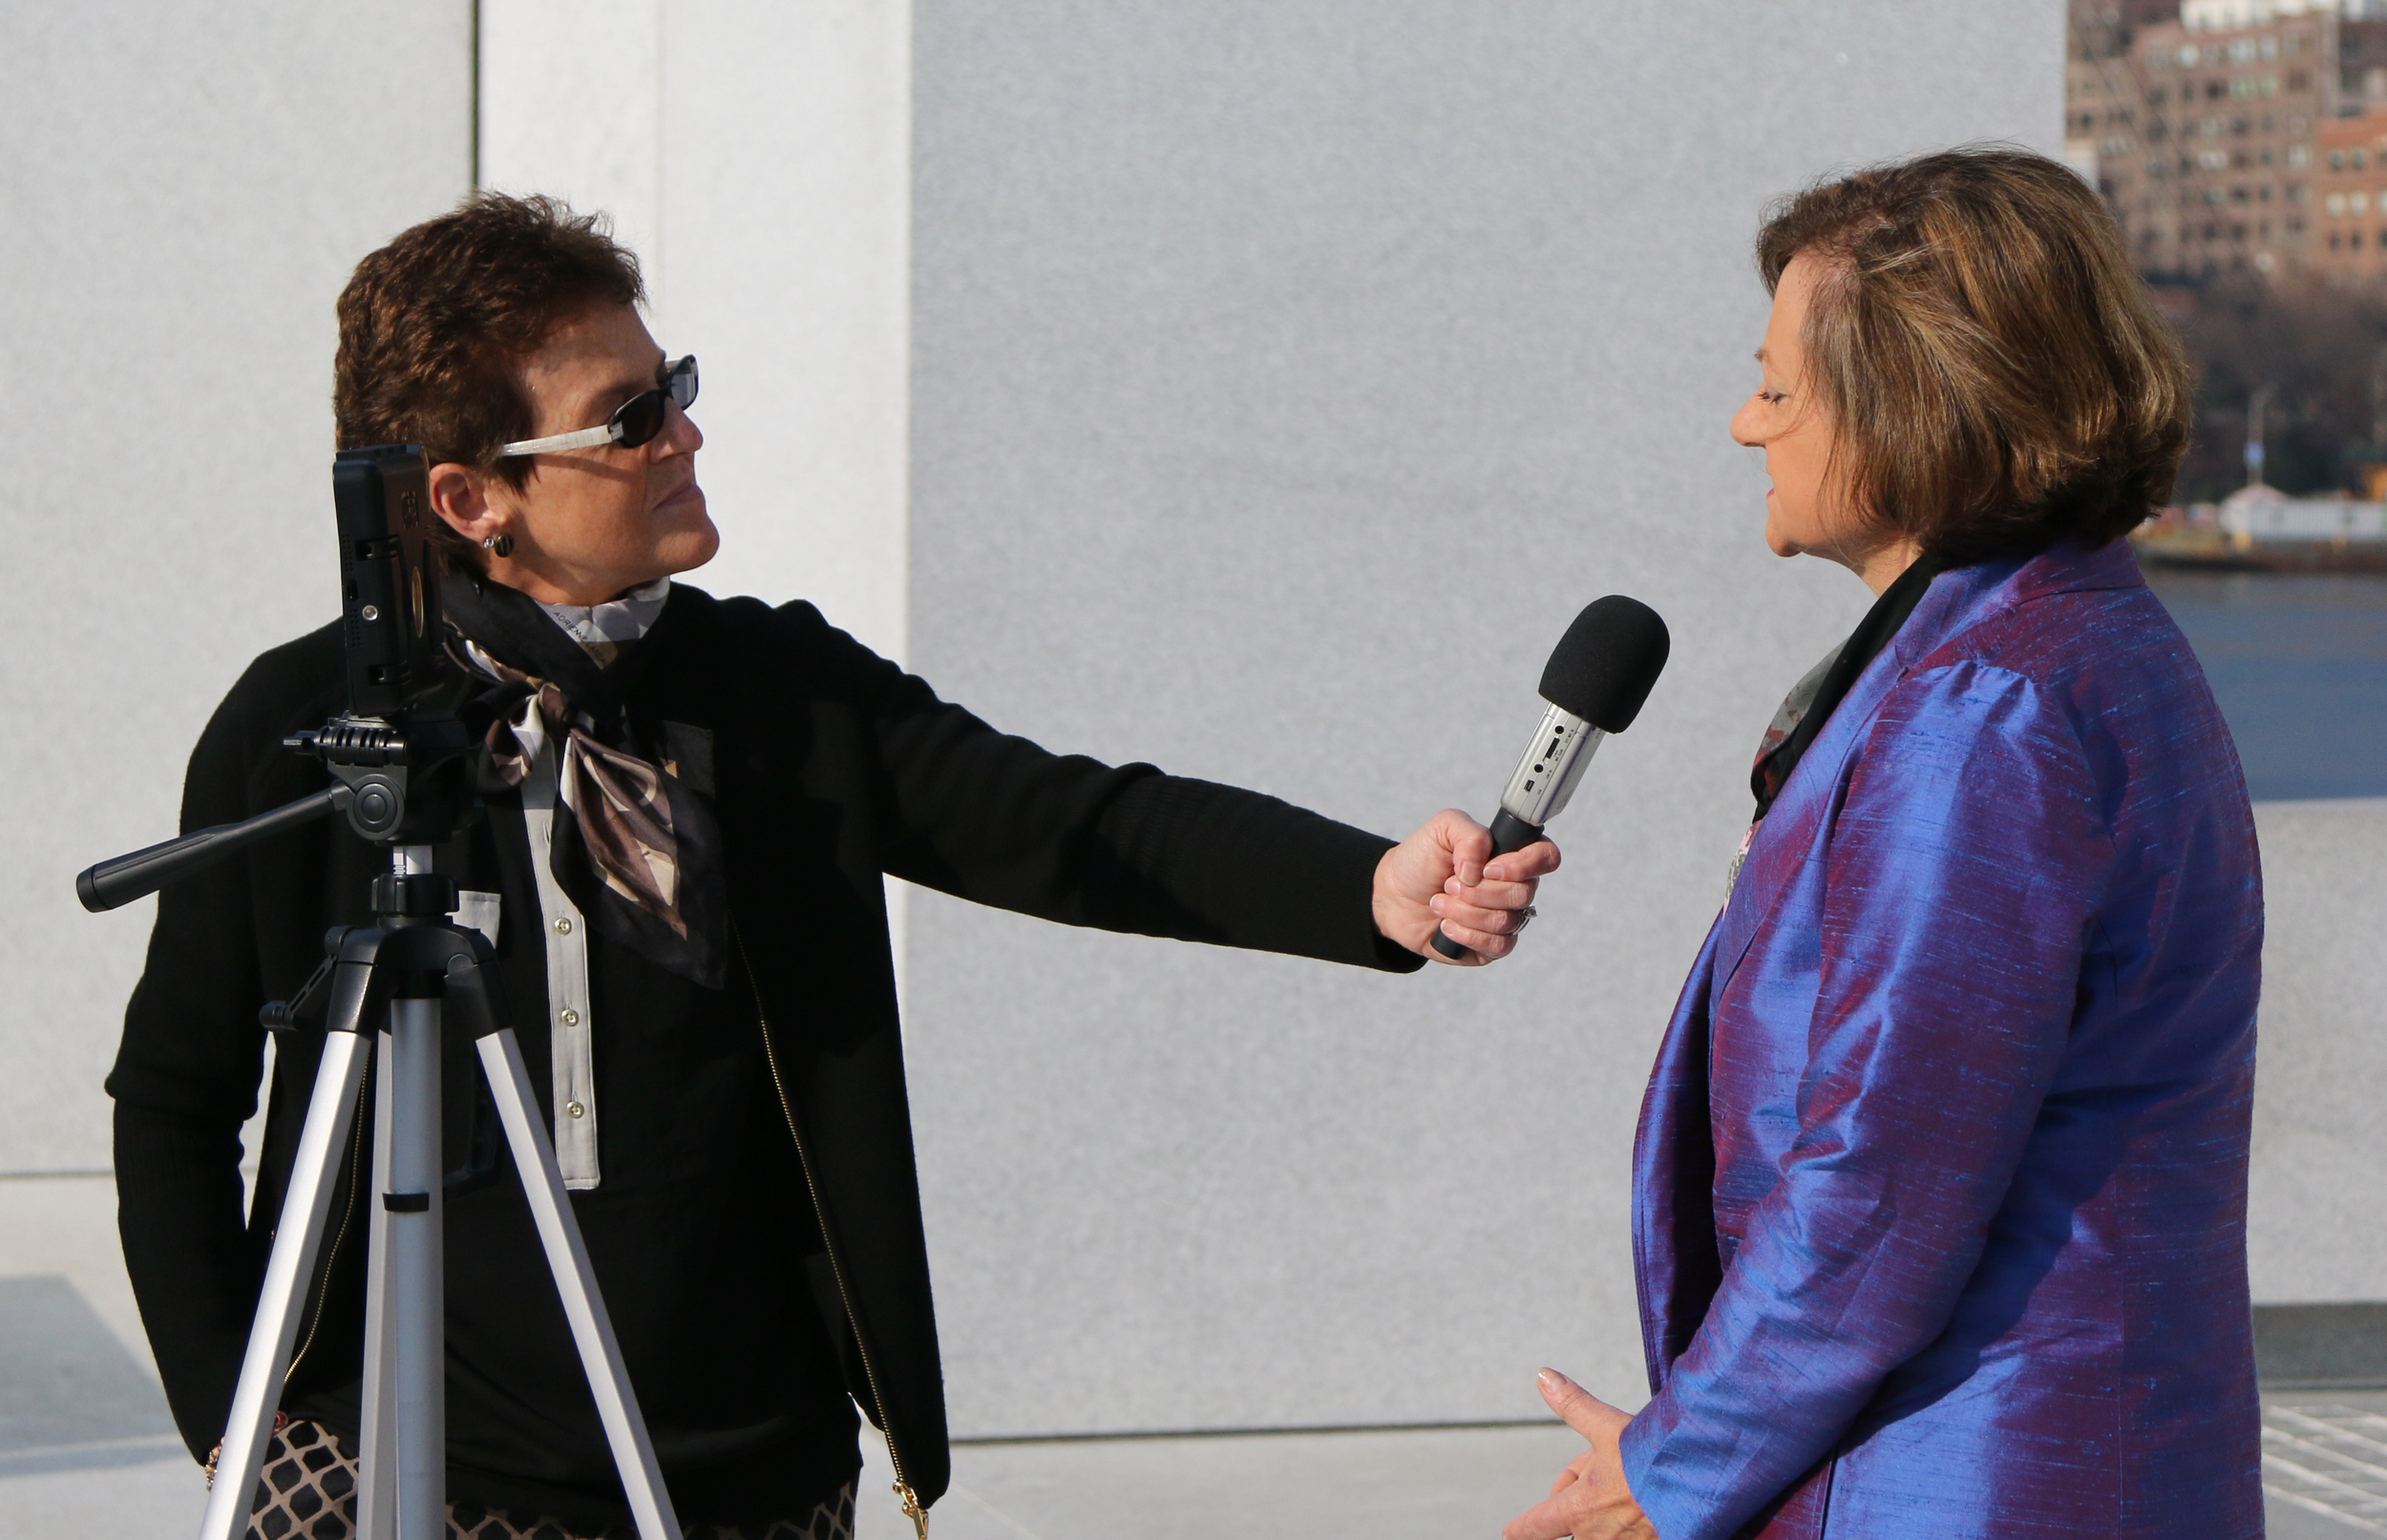 Cristina Gallach, UN Under-Secretary-General for Communications and Public Information is interviewed